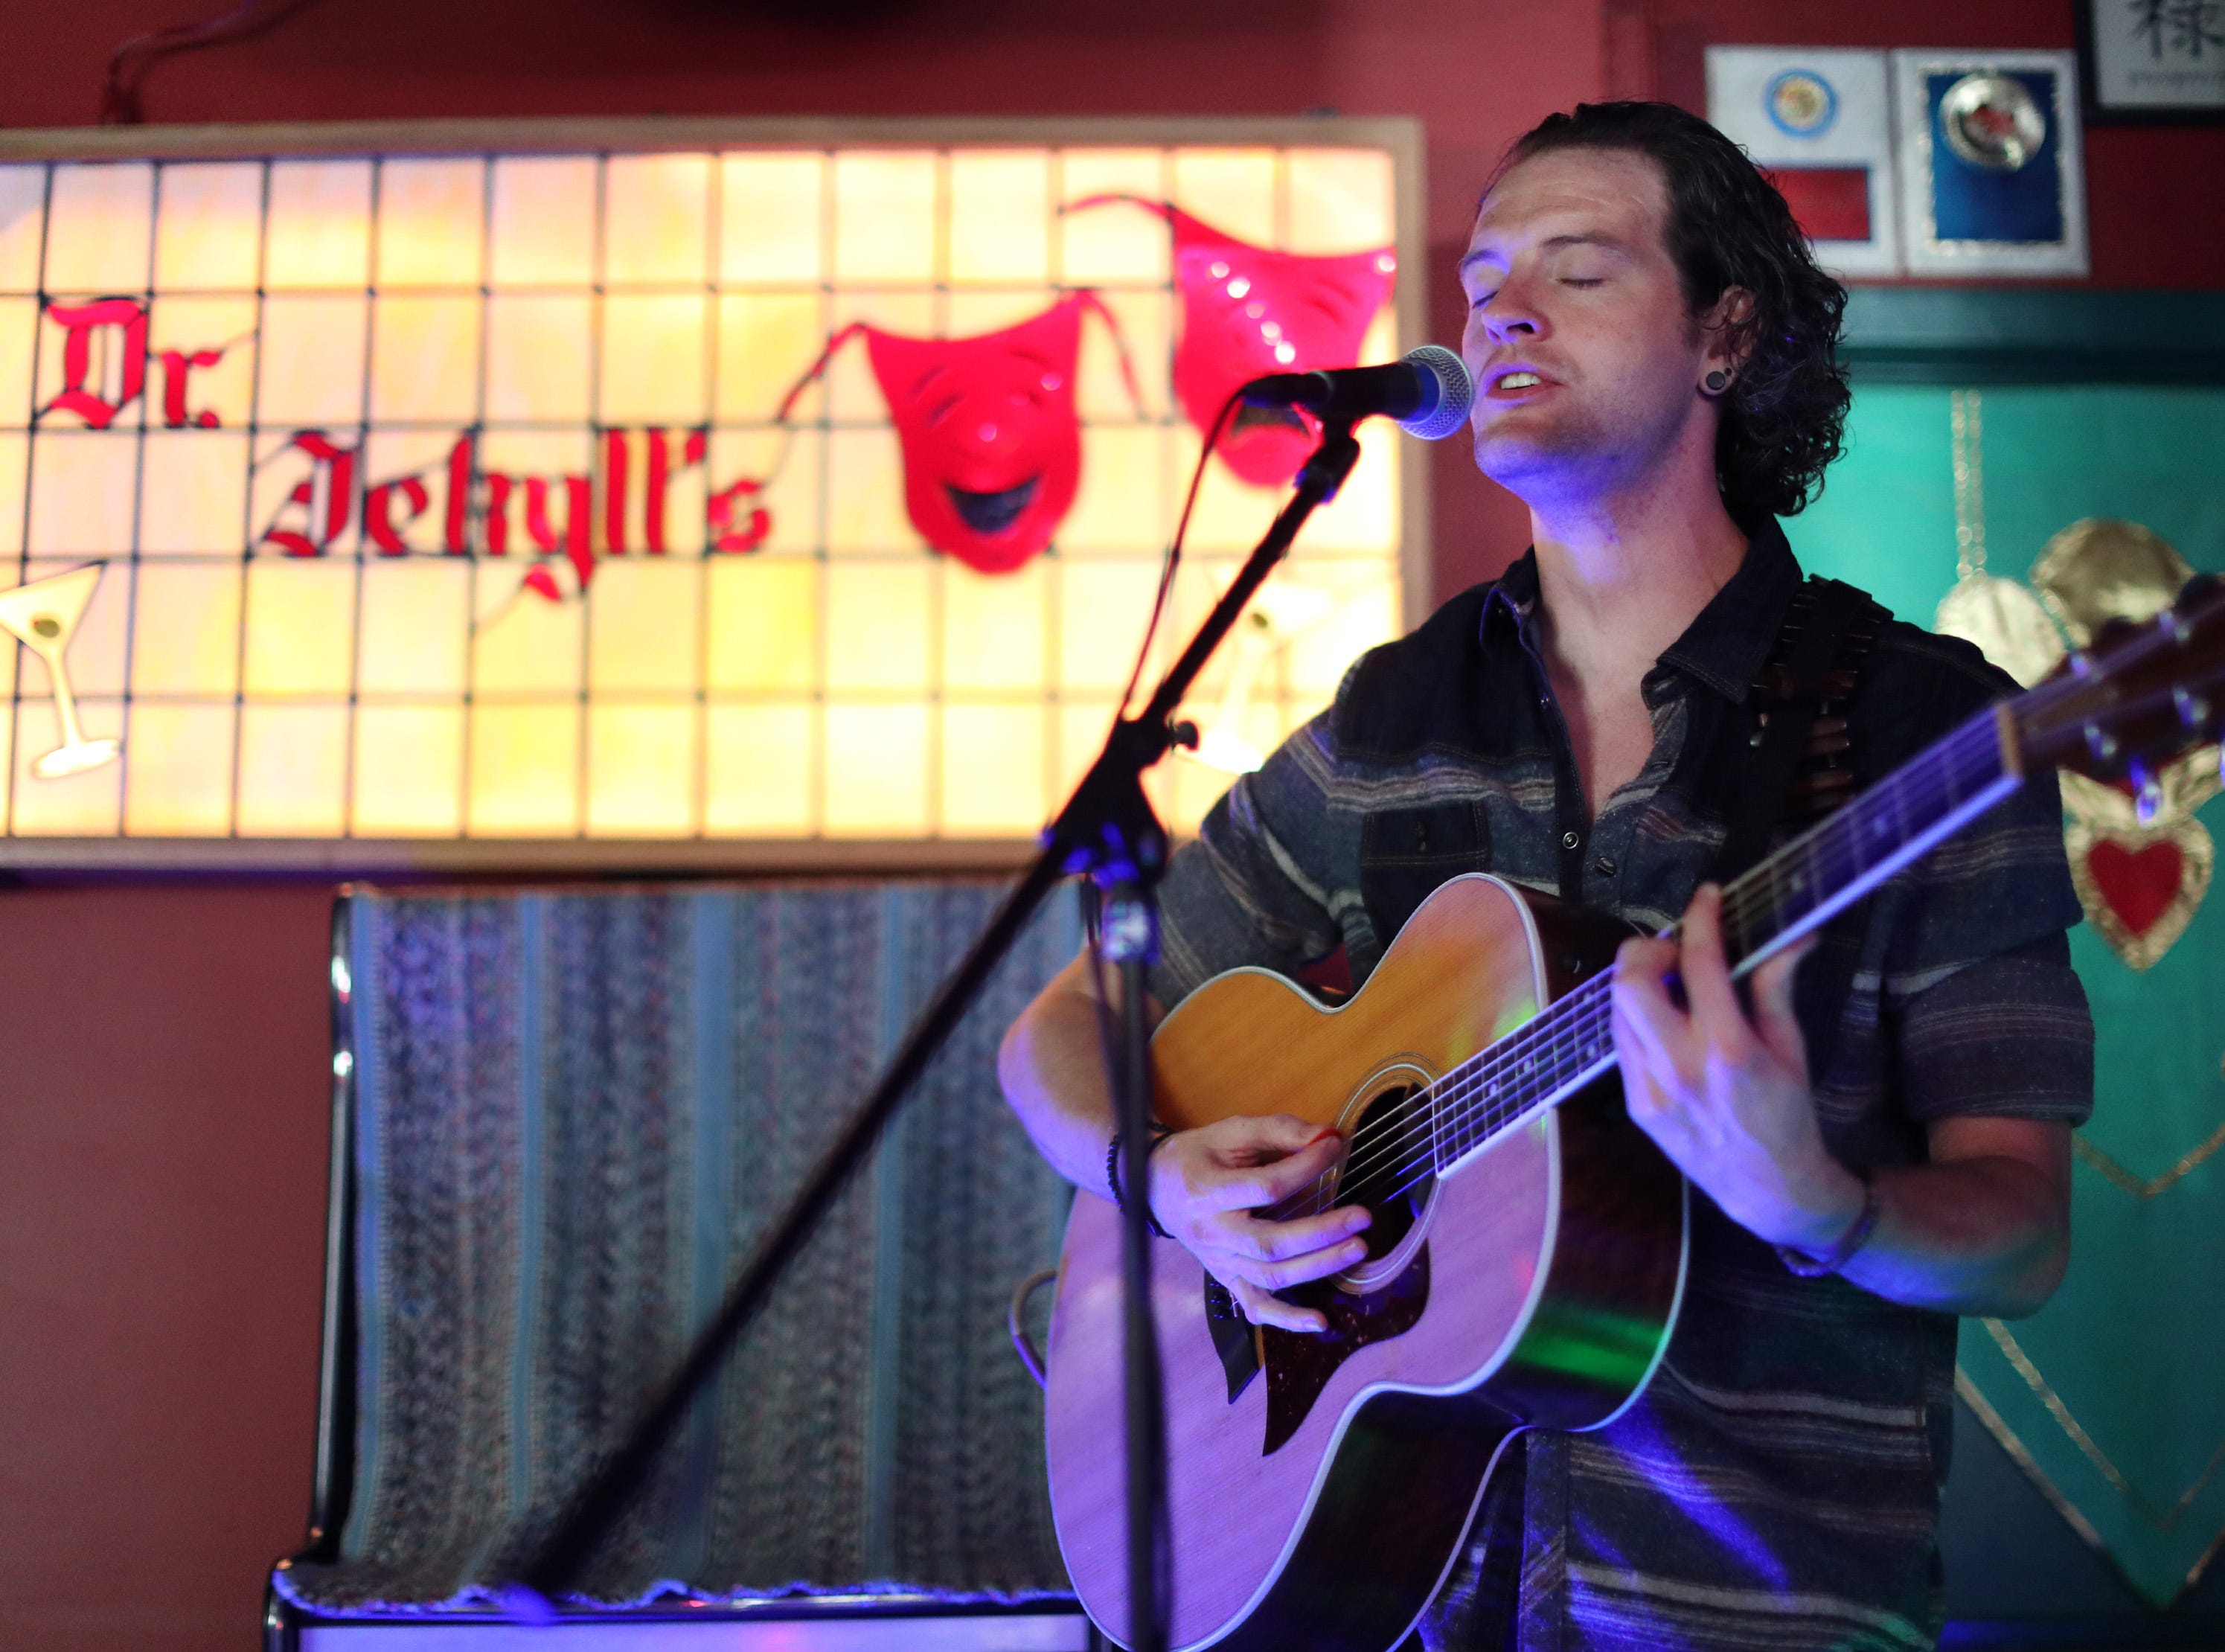 Ryan M. Brewer performs at Dr. Jekyll's during the second day of Mile of Music Friday, Aug. 2, 2018, in Appleton, Wis.